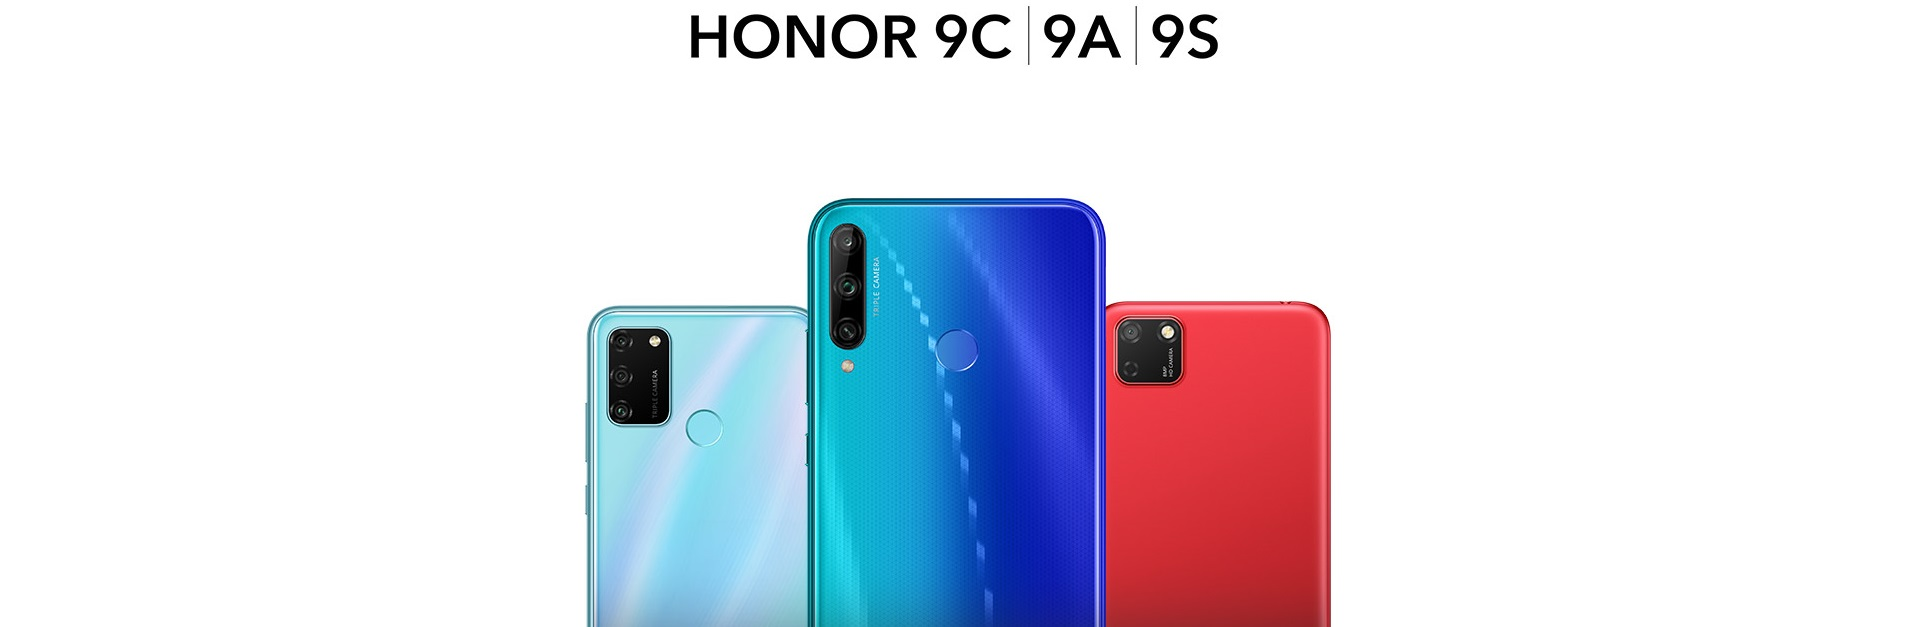 Honor 9C 9A 9S smartphone